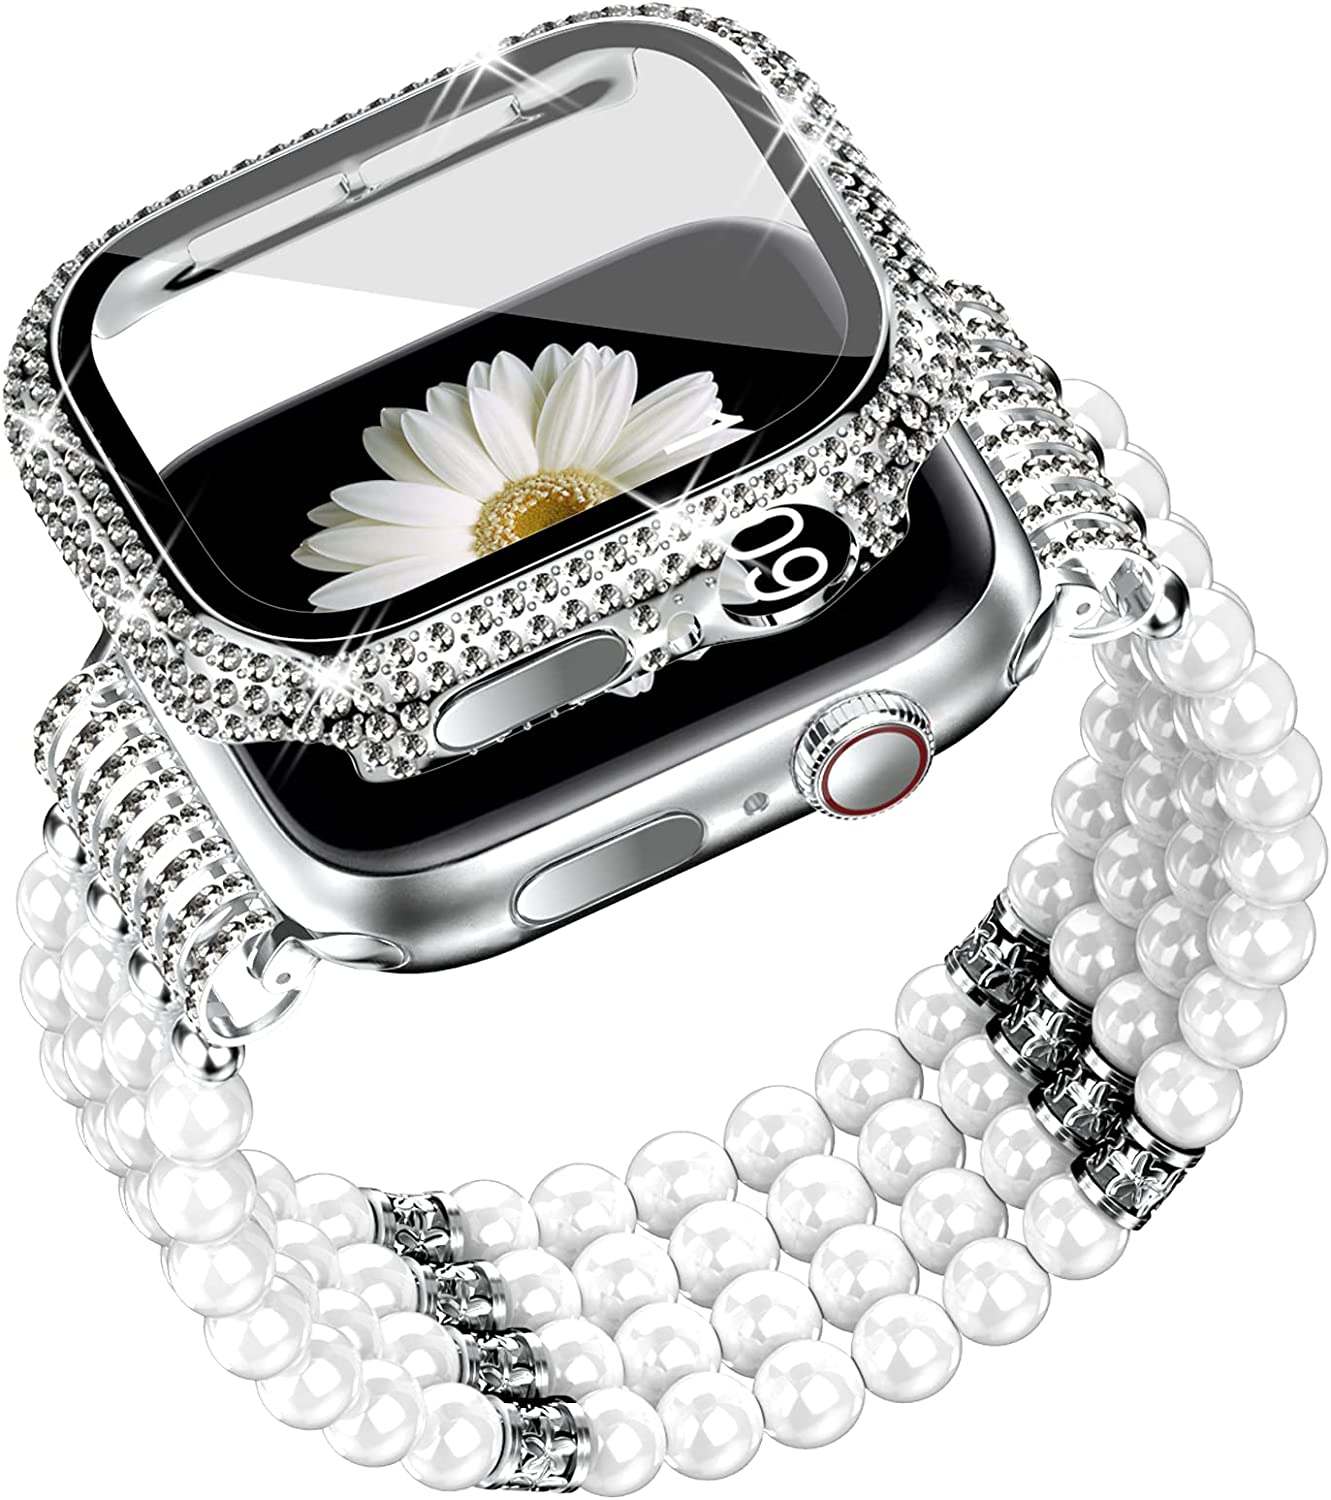 DABAOZA Compatible for Apple Watch Band and Case 40mm 44mm with Screen Protector , Women Bling Handmade Beaded Elastic Stretch Pearl Bracelet Strap for iWatch SE Series 6/5/4